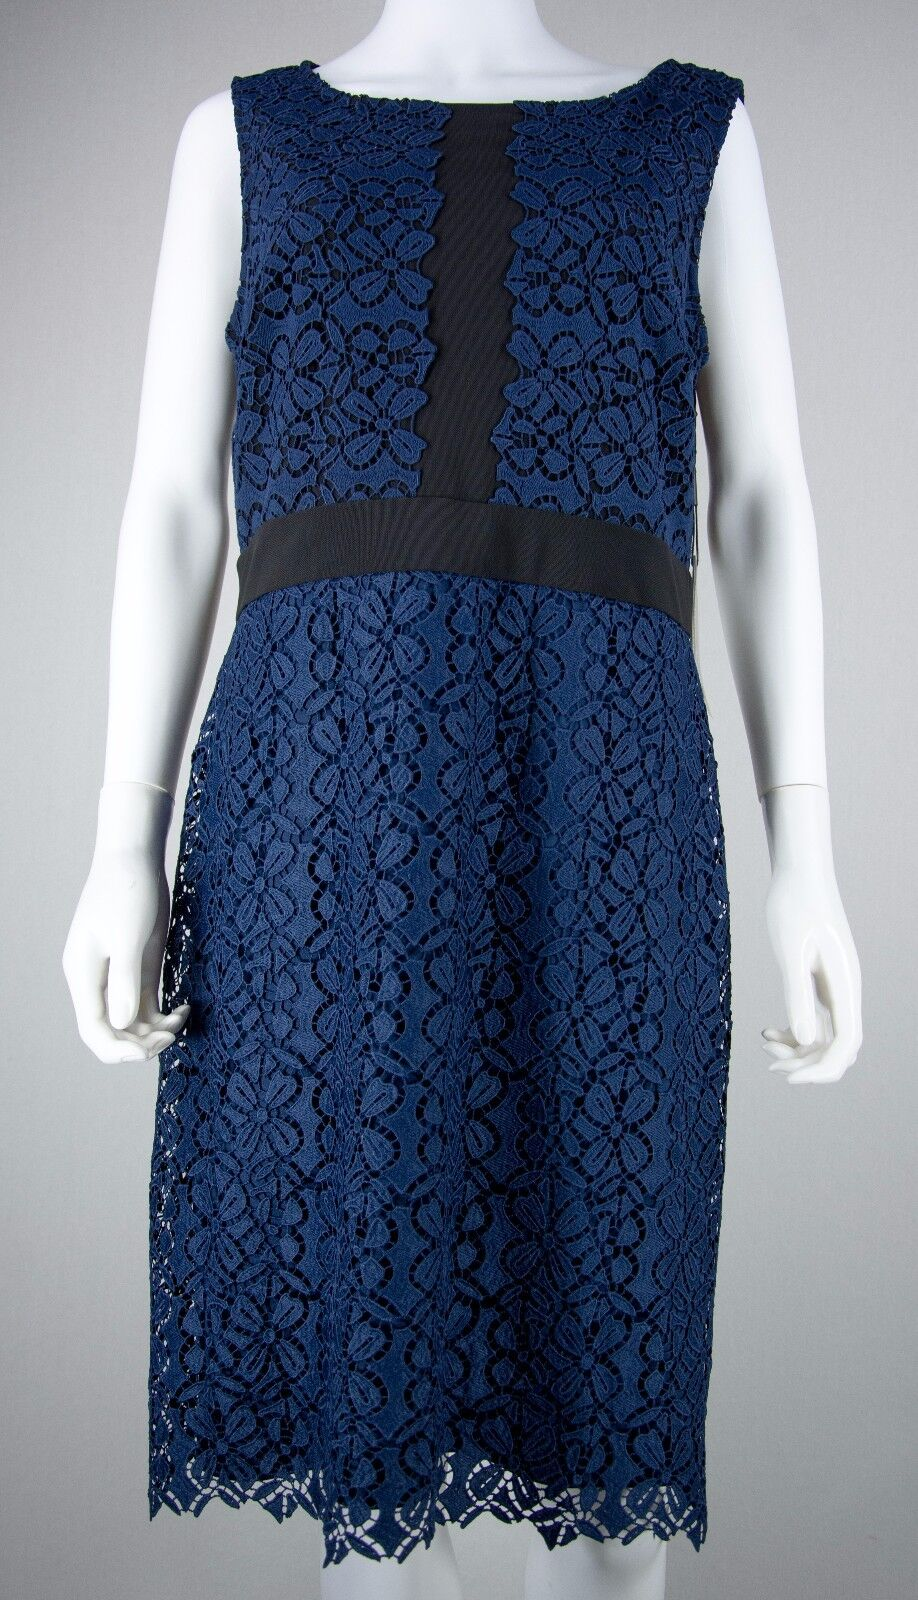 Woherren Karl Lagerfeld Größe 12 Dark Blau Sleeveless Floral Lace Dress NEW NWT